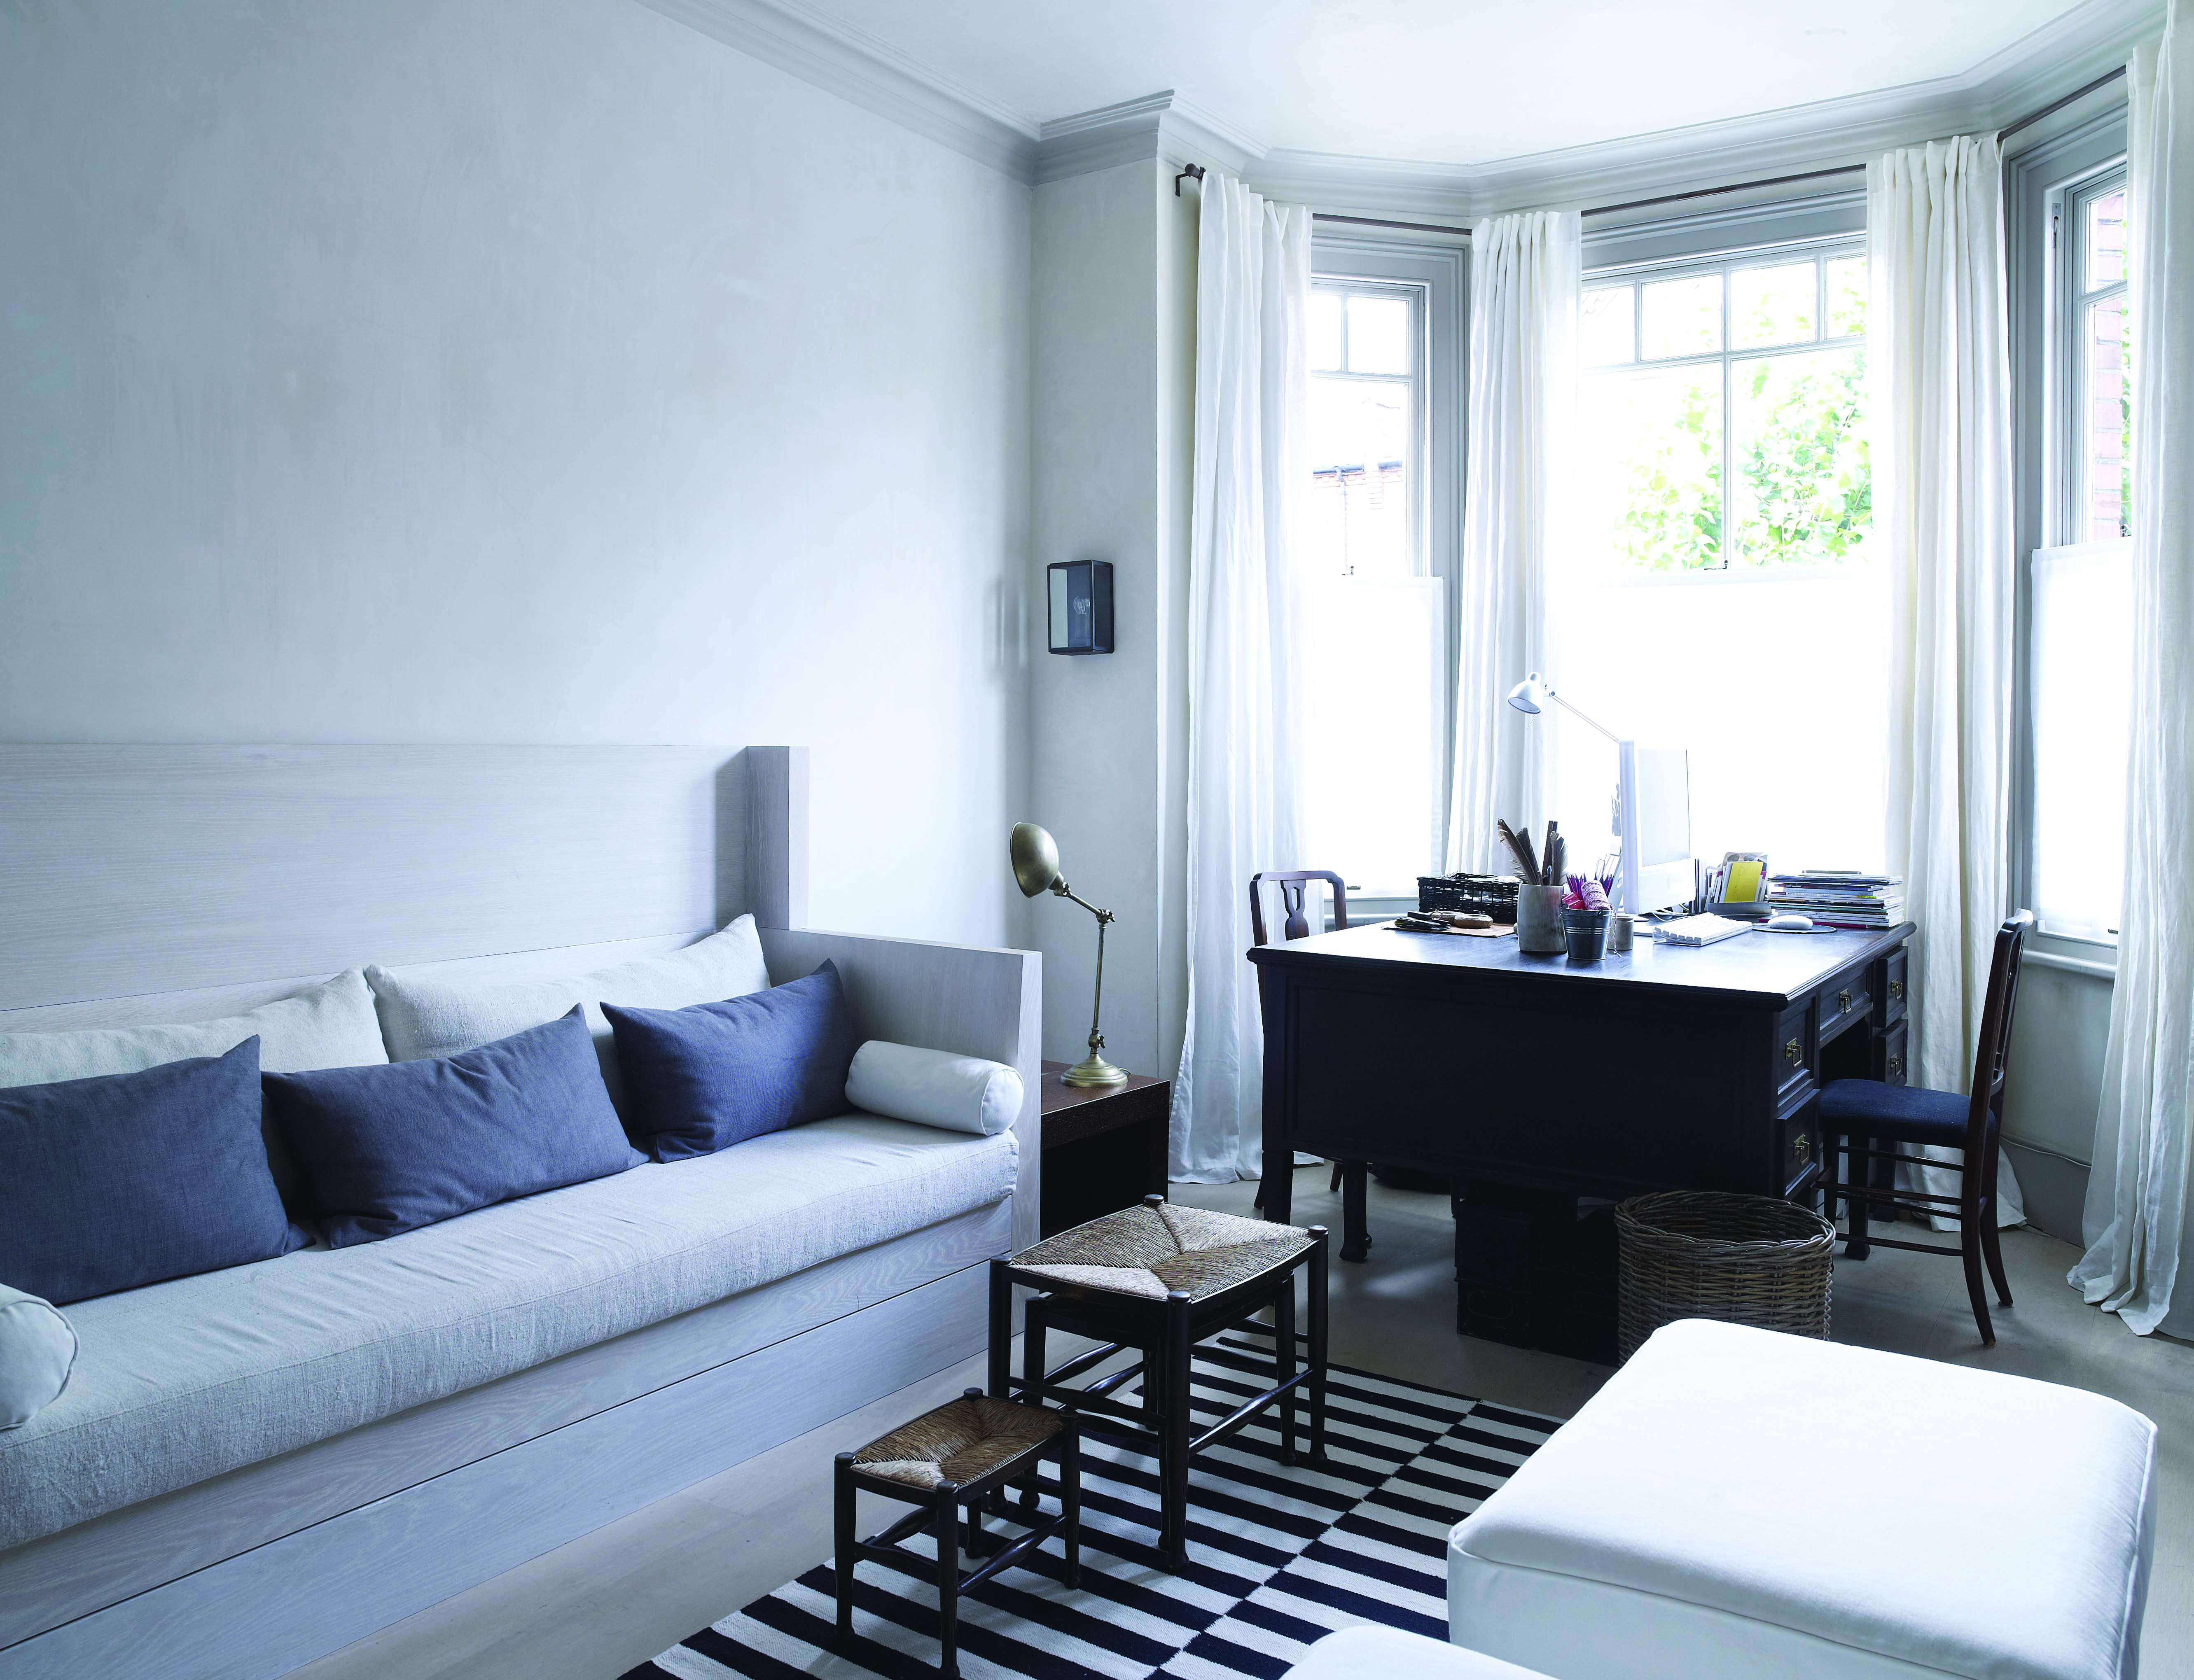 Slow Architecture: An Elegant, Monochrome Home in London by Spencer ...